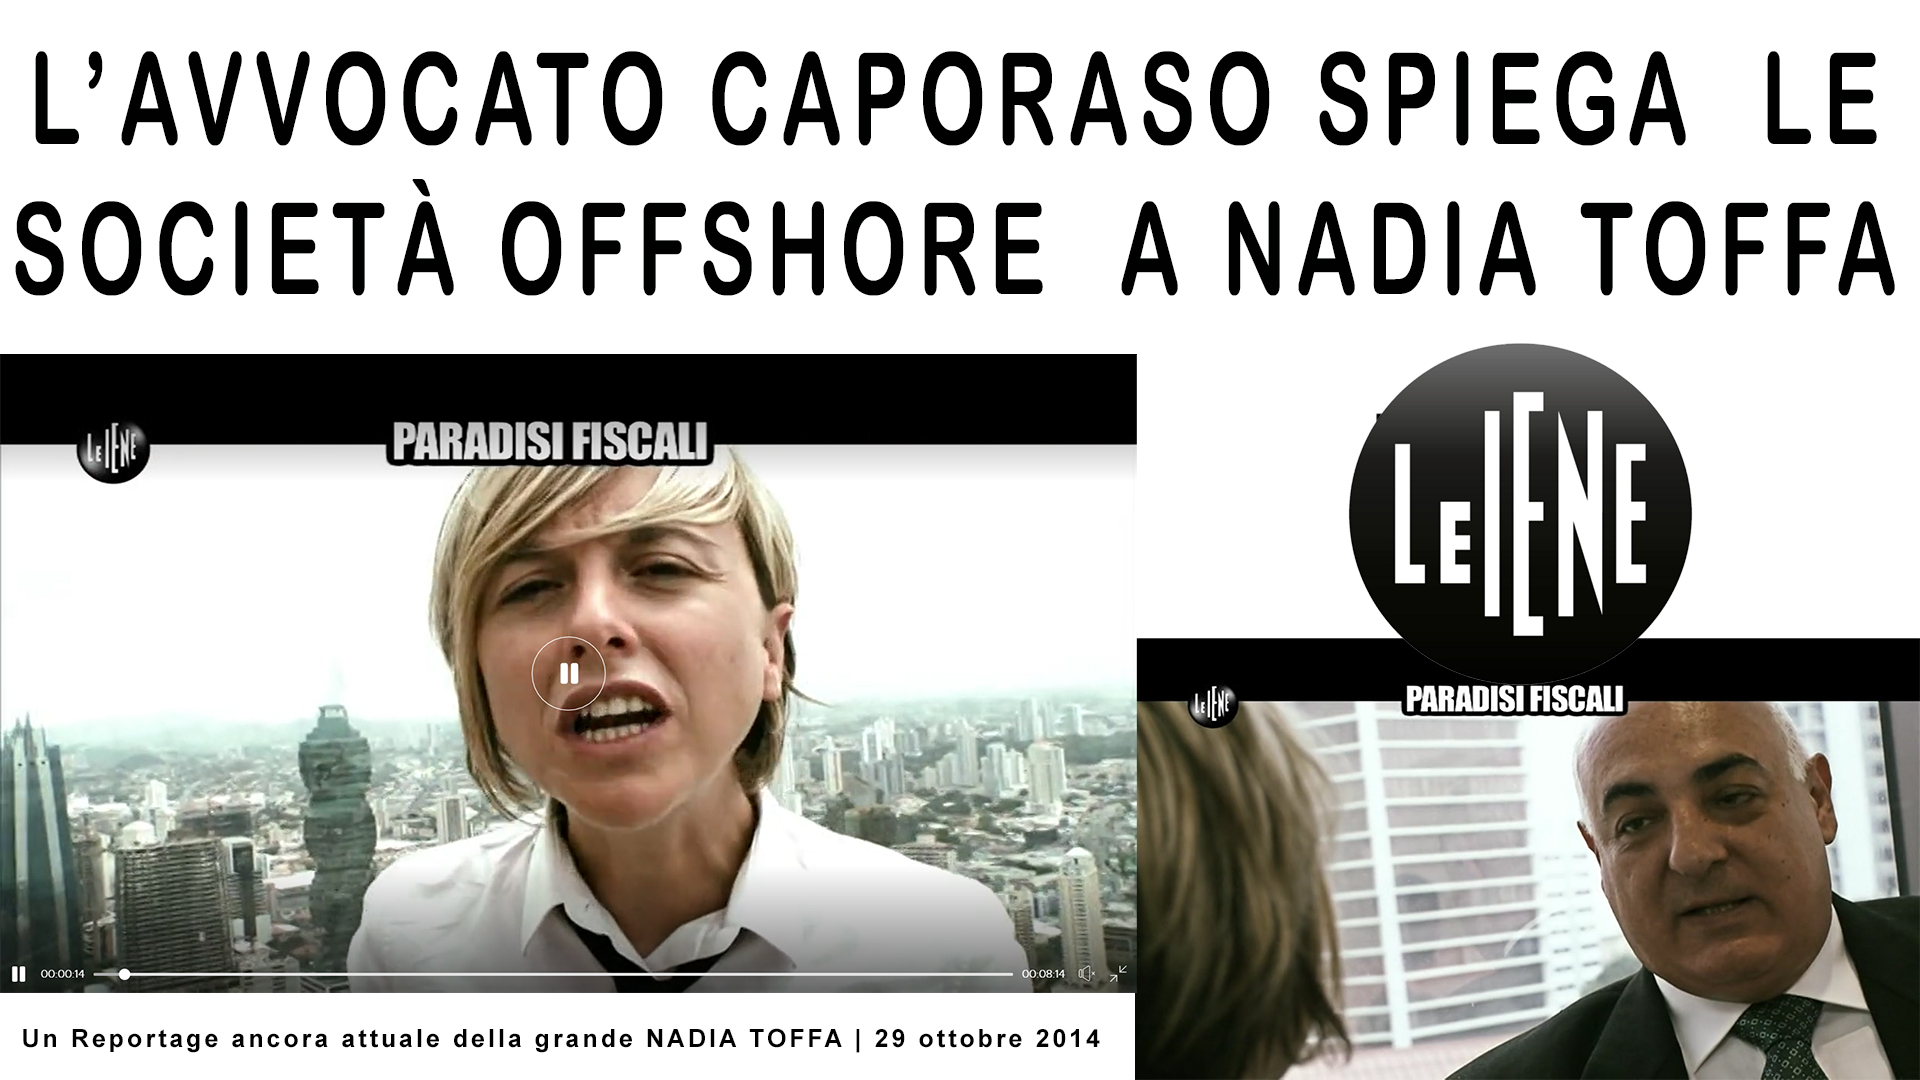 Caporaso spiega societa offshore Nadia Toffa video